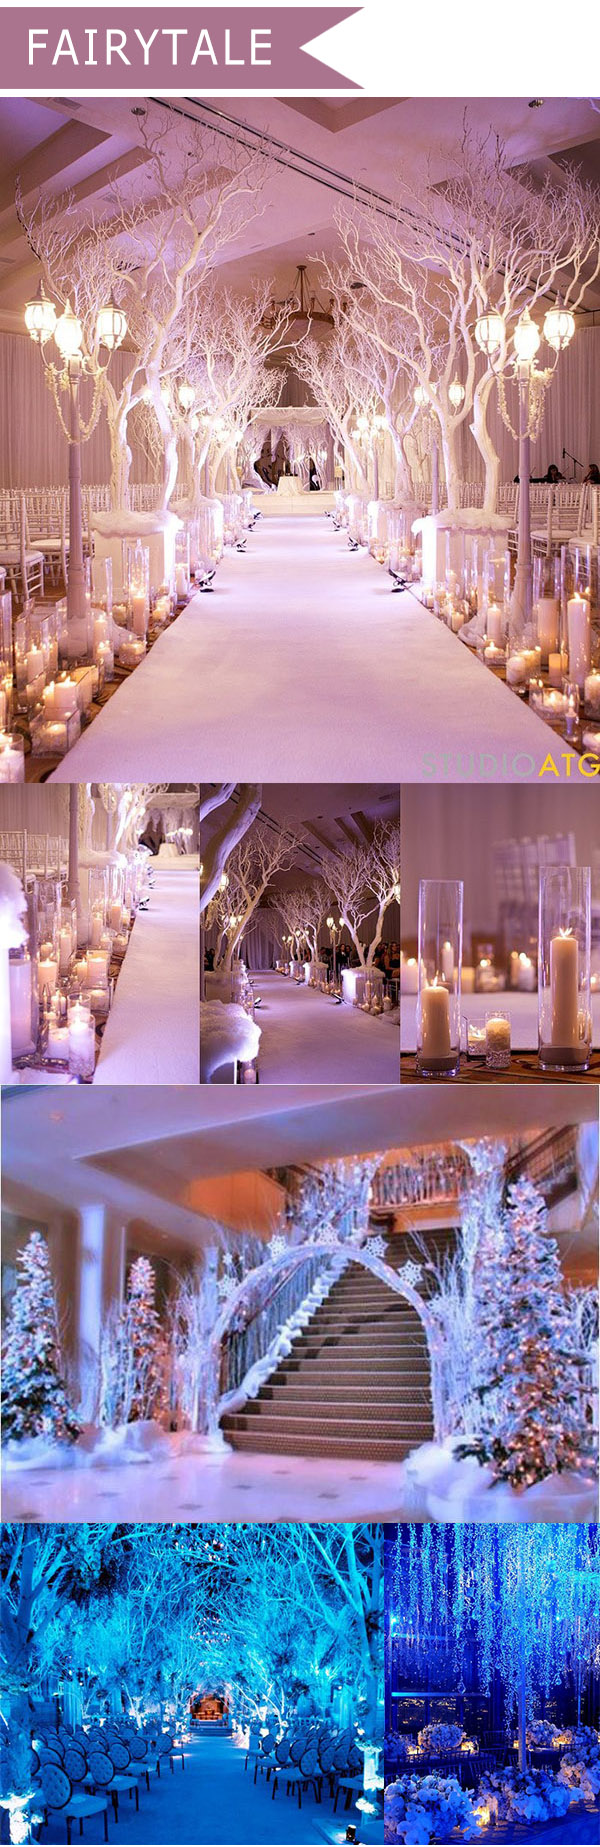 10 Trending Wedding Theme Ideas for 2016 – Elegantweddinginvites.com ...